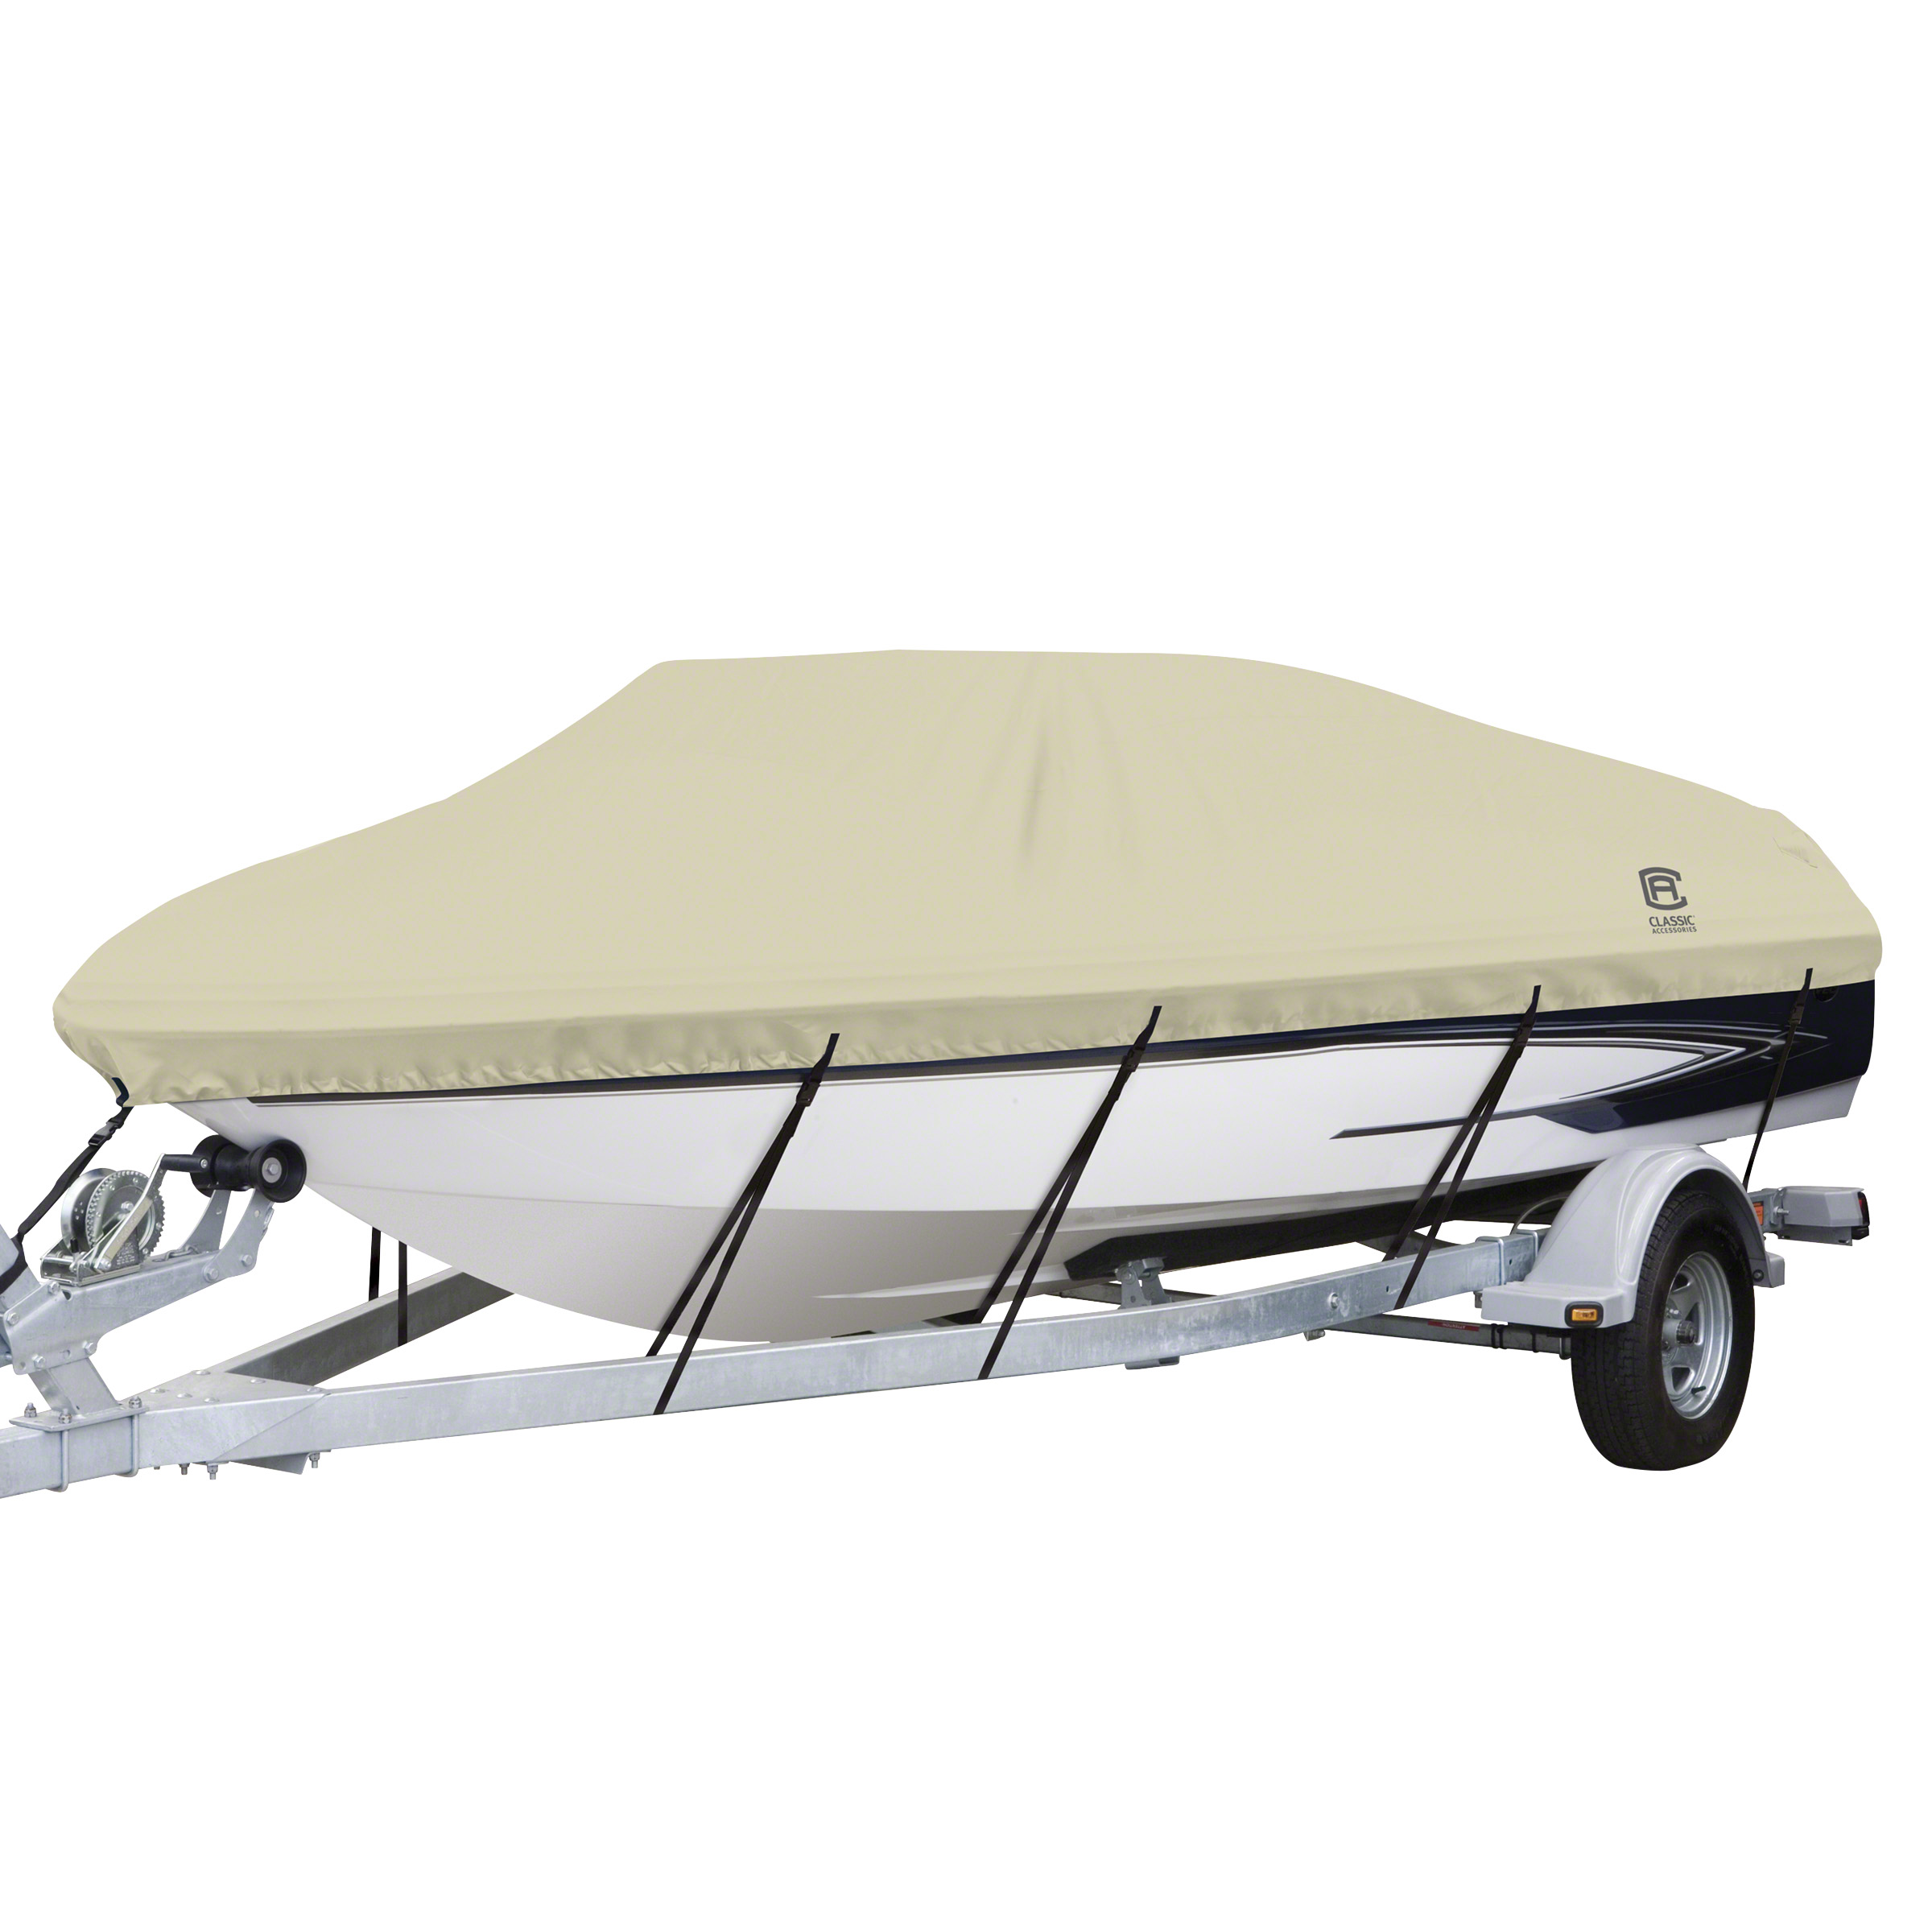 Classic Accessories DryGuard Waterproof Boat Cover, Fits Boats 14' - 24' L